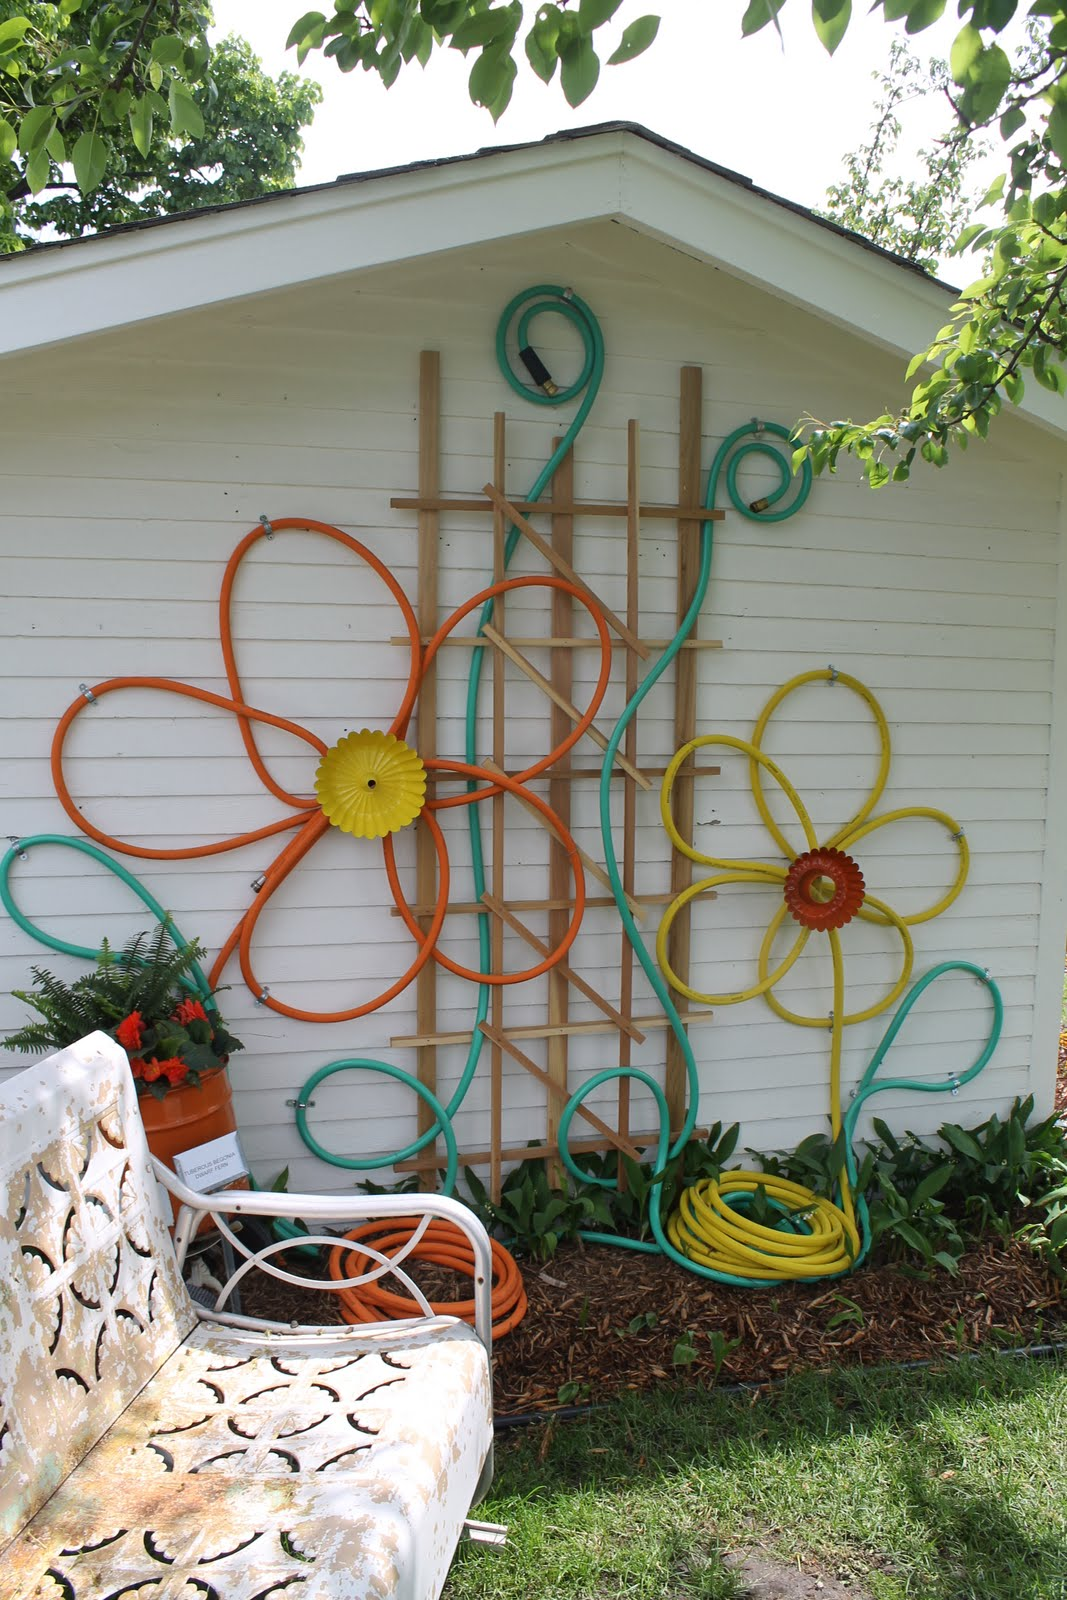 Outstanding Make Flowers From Hoses Outdoor House Decor How To Beautify Your House Outdoor Wall Dcor Ideas Backyard Fence Clipart Backyard Fence Art Ideas outdoor Backyard Fence Art